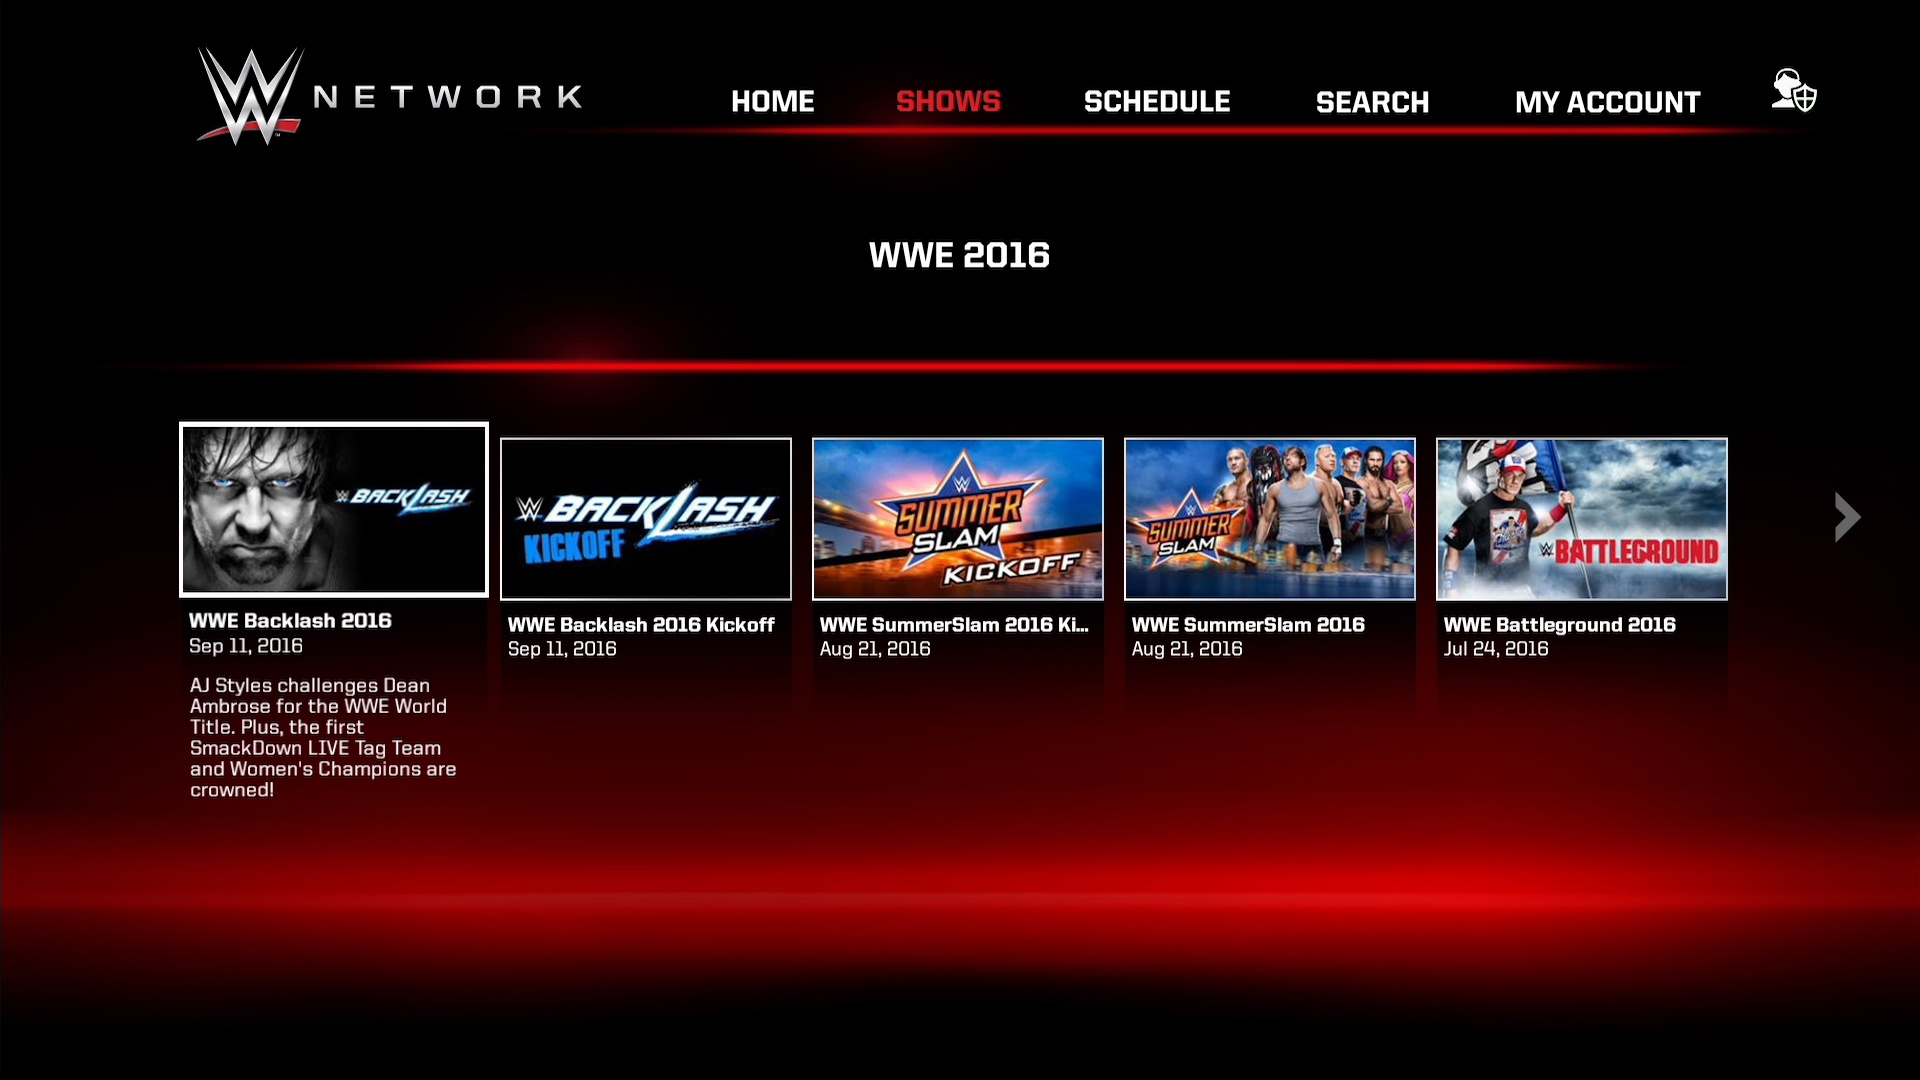 Amazon WWE Network Appstore for Android